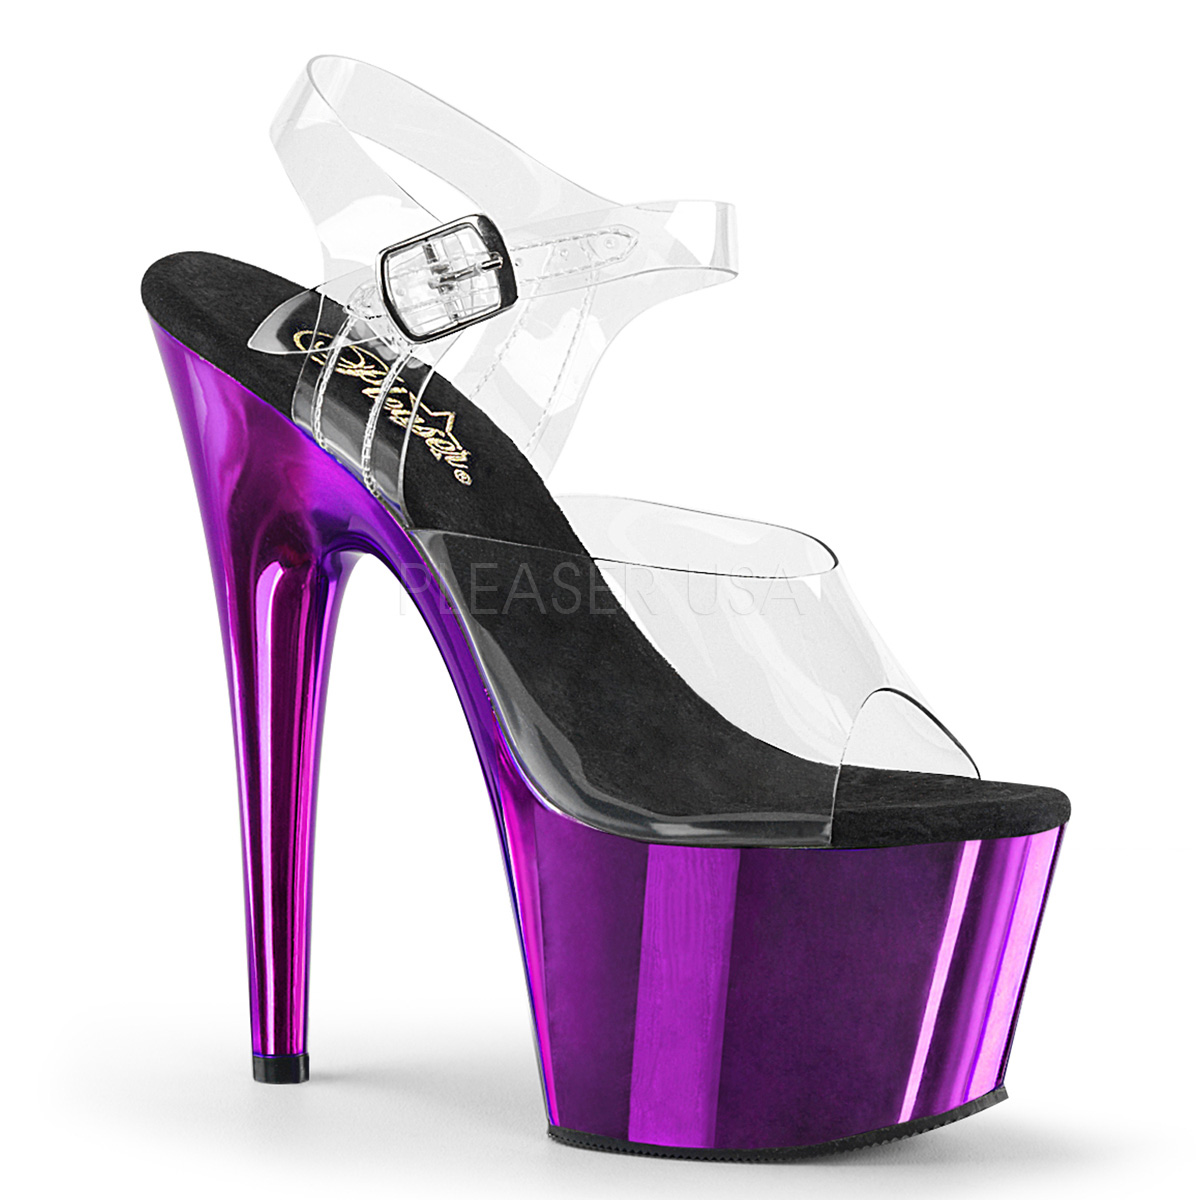 Women's Pleaser Adore 708 Economical, stylish, and eye-catching shoes